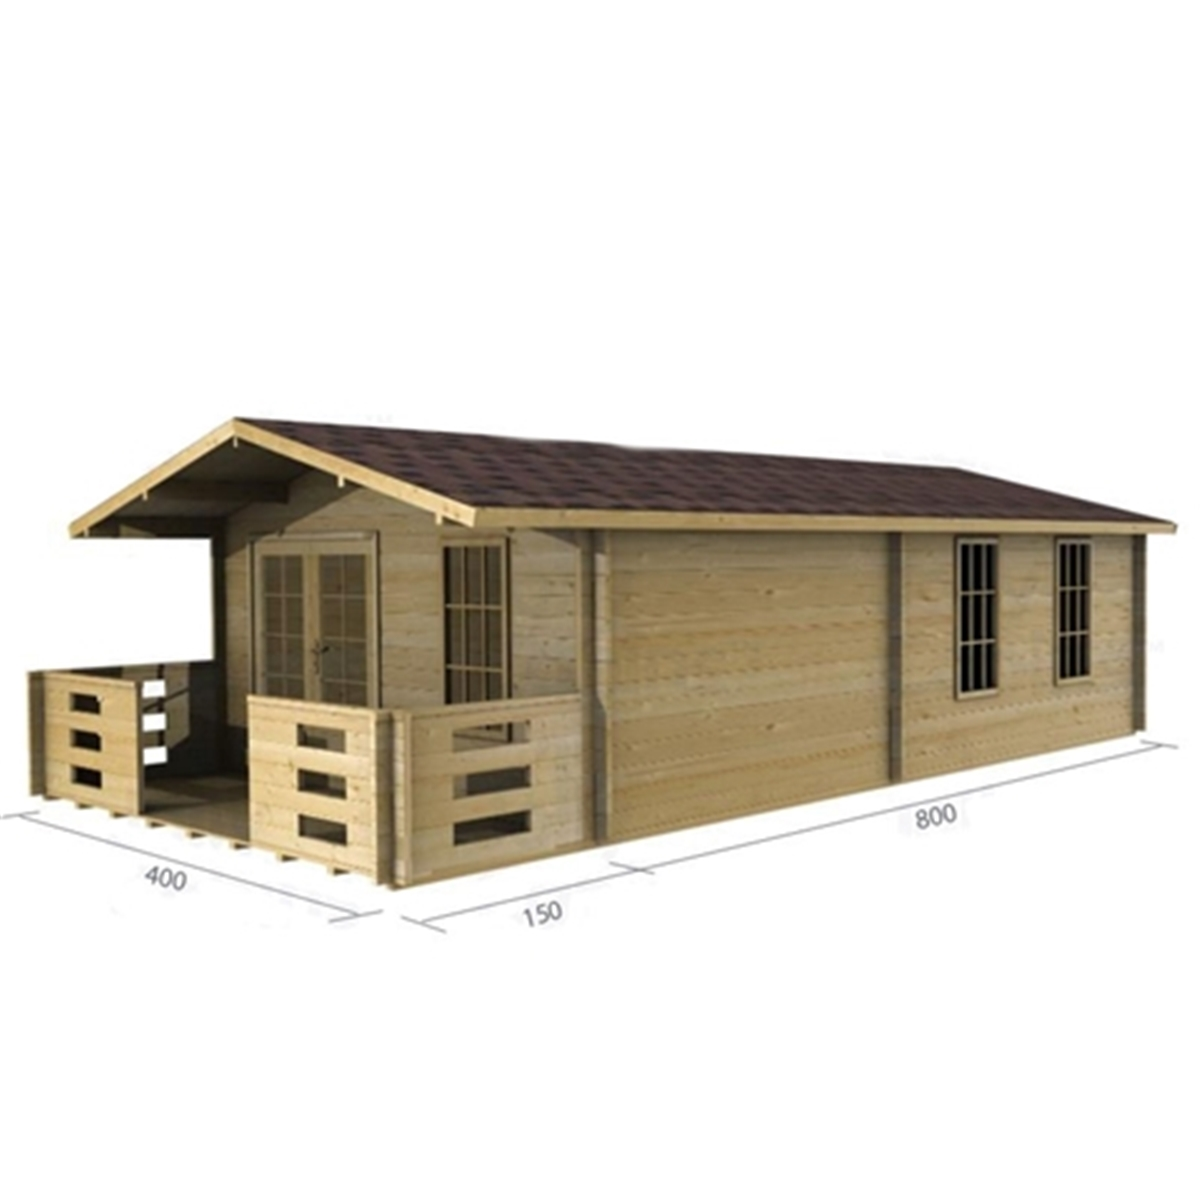 Superb img of Discovery Premier Cabins : 4m x 8m Deluxe Apex Log Cabin Double  with #997632 color and 1200x1200 pixels